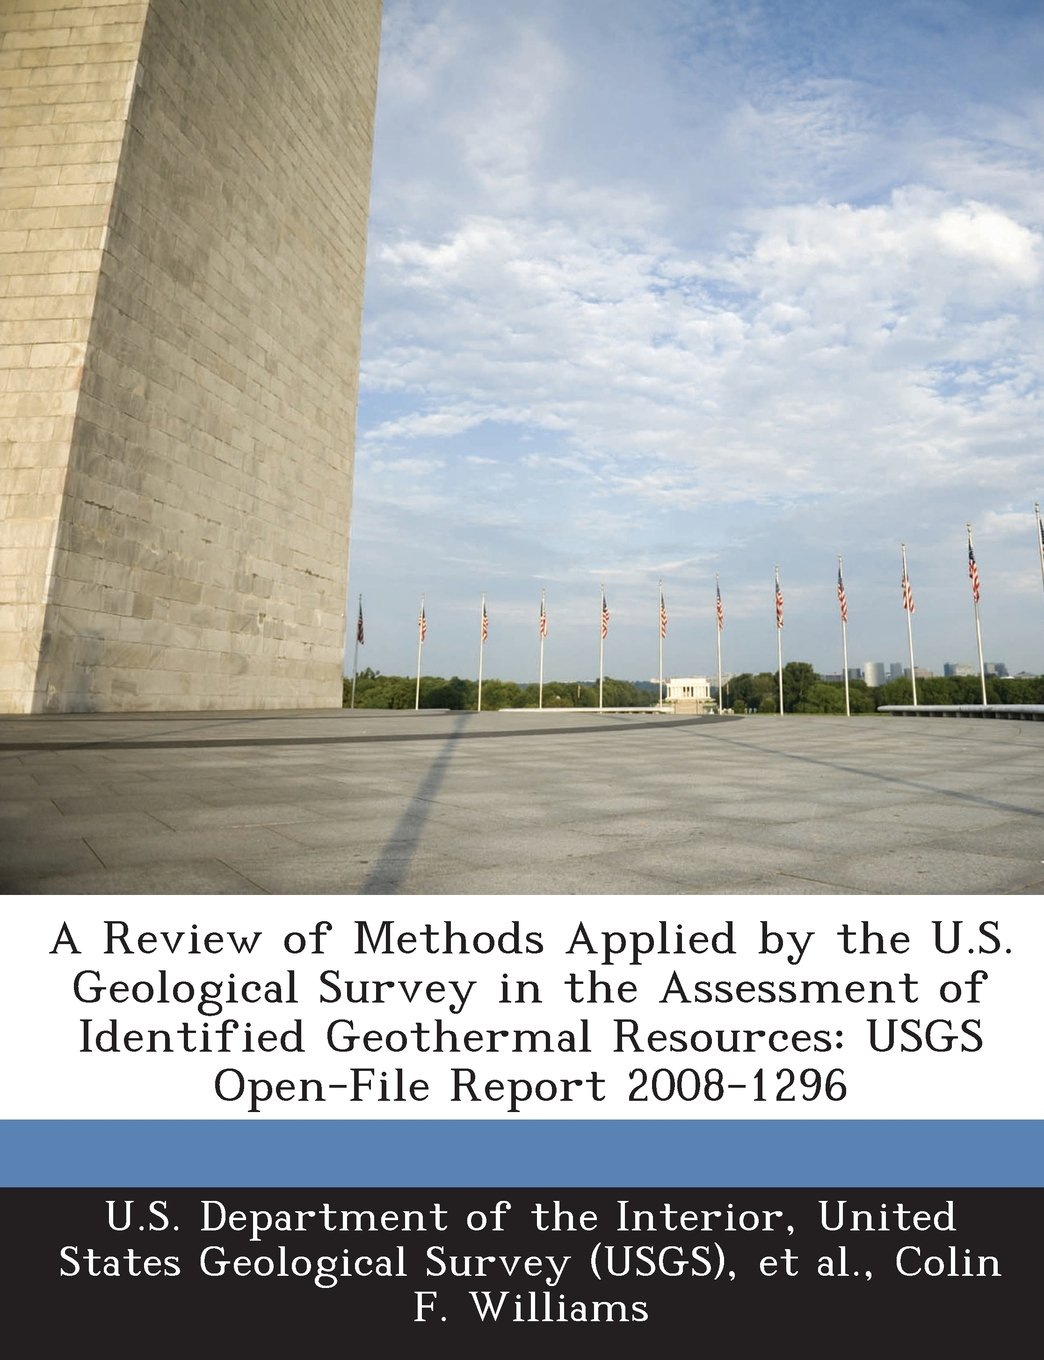 Download A Review of Methods Applied by the U.S. Geological Survey in the Assessment of Identified Geothermal Resources: USGS Open-File Report 2008-1296 pdf epub